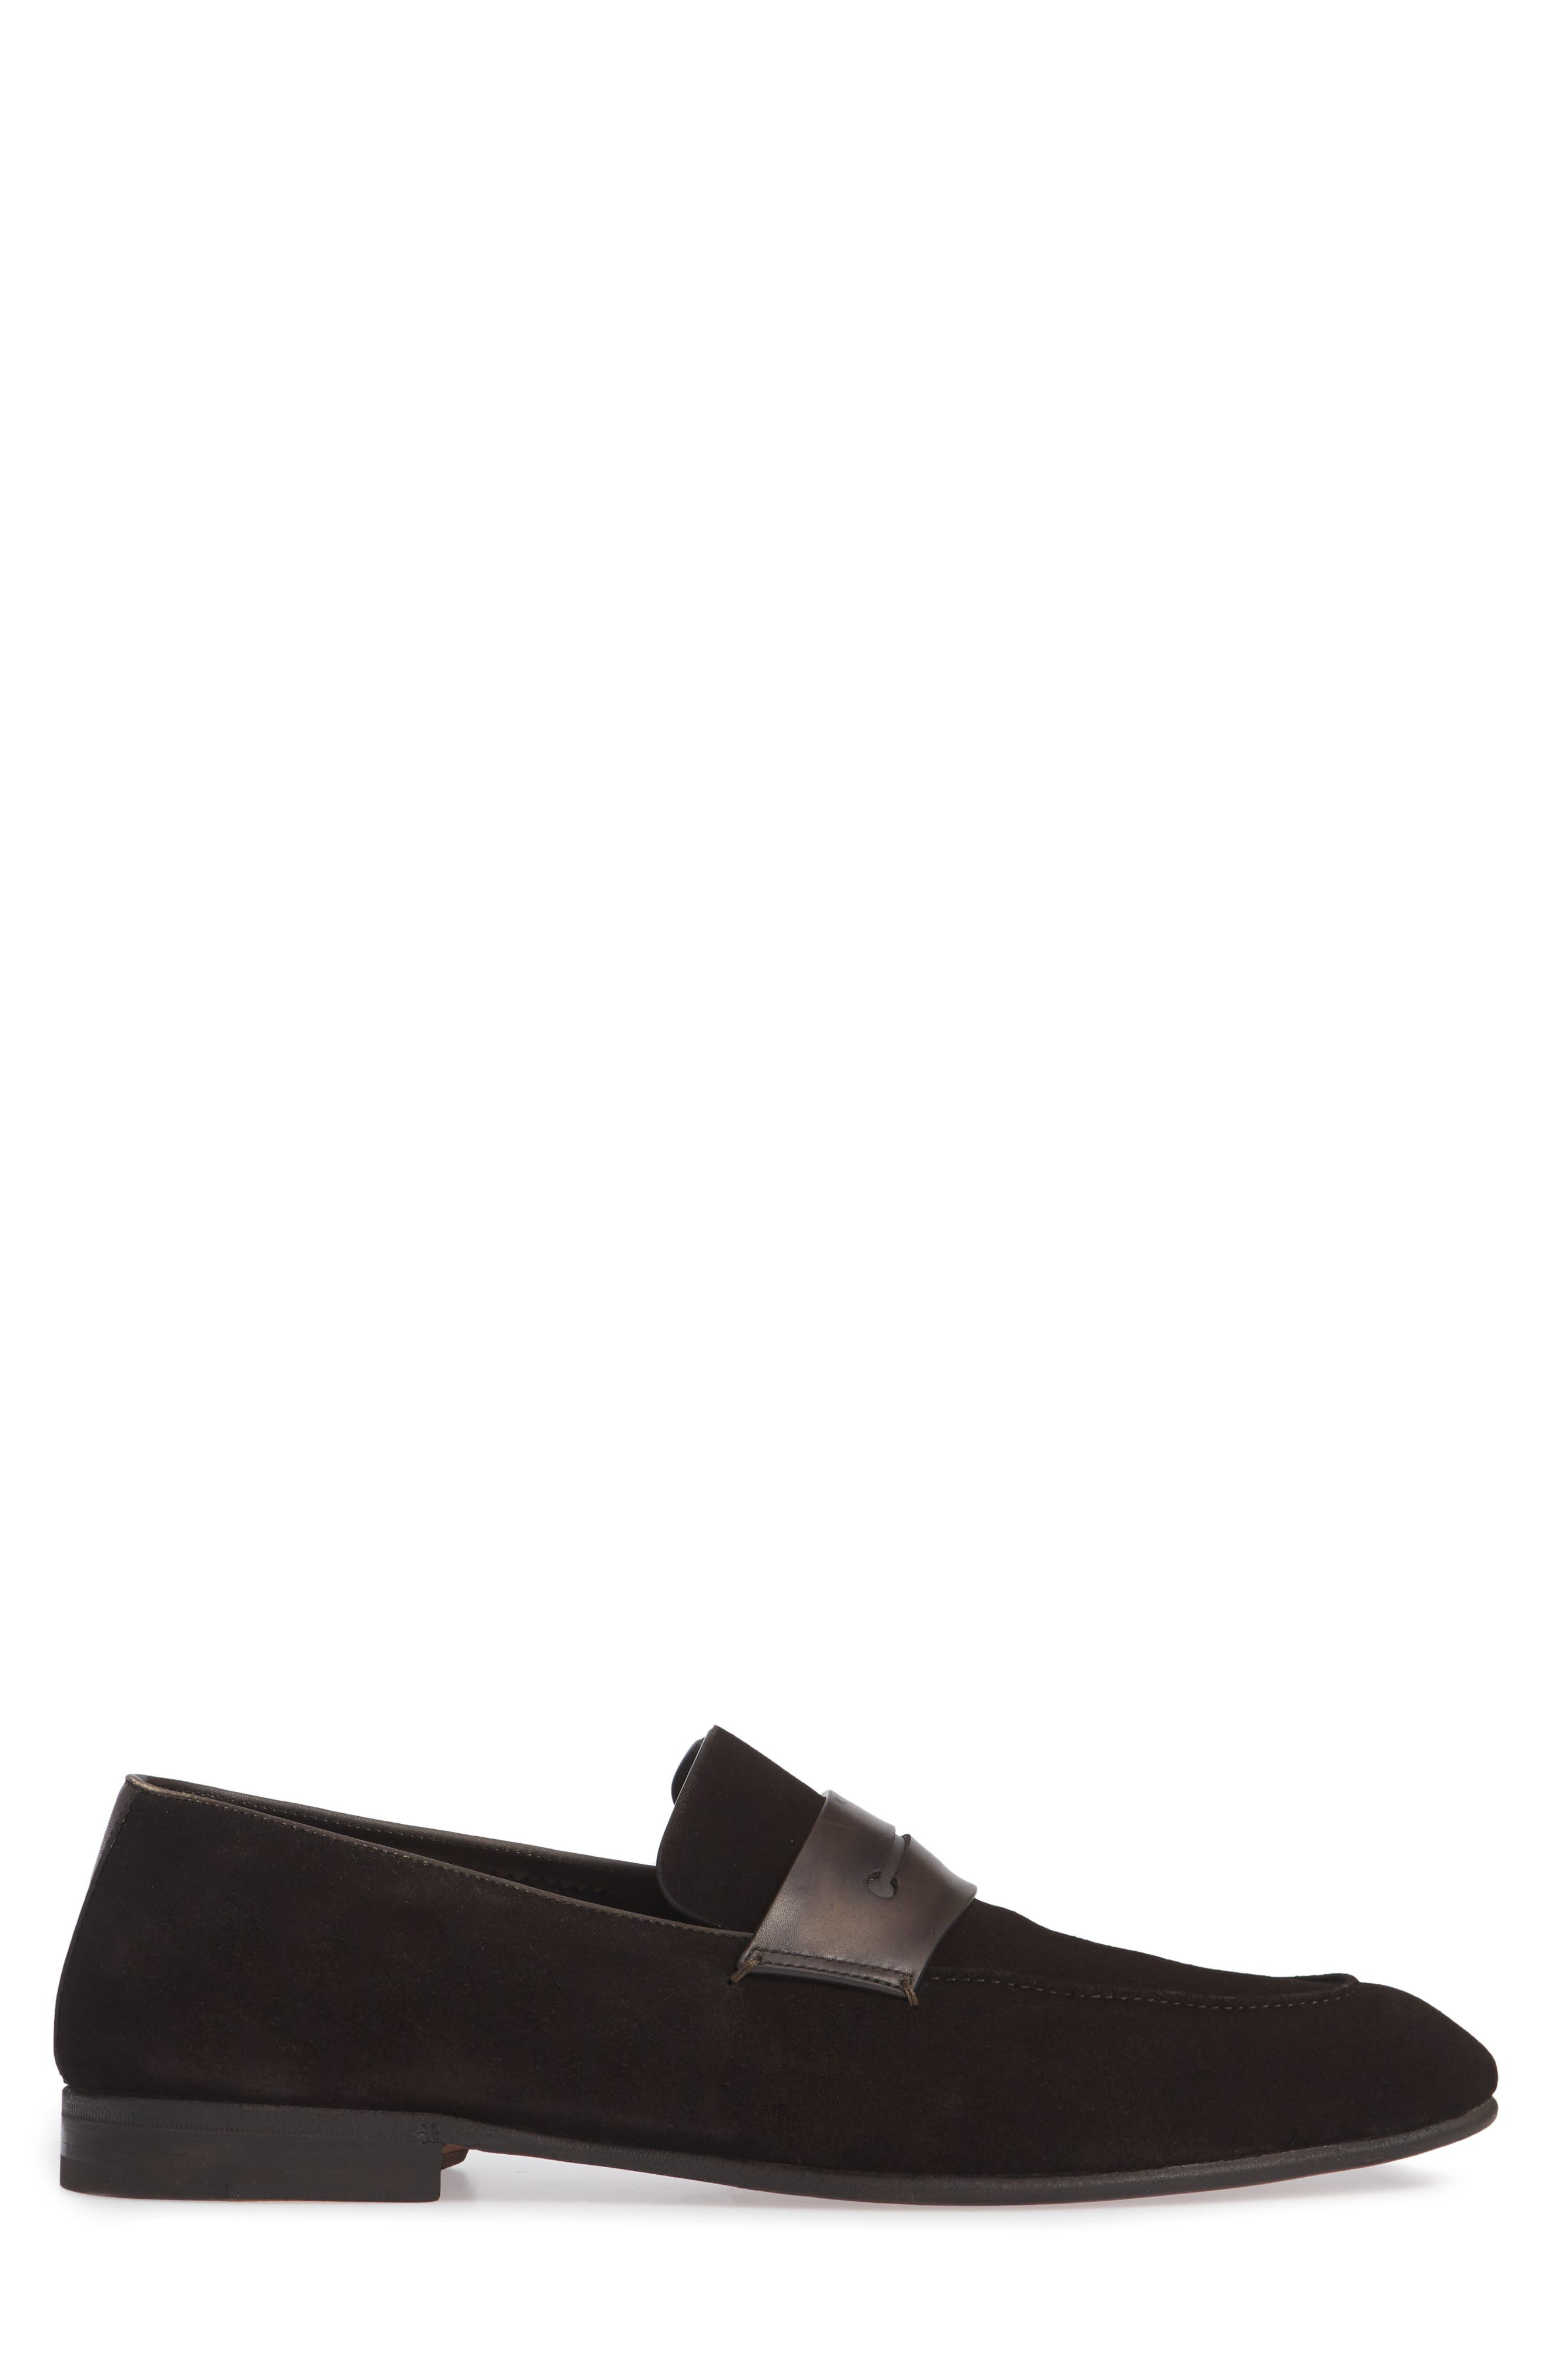 Penny Loafer,                             Alternate thumbnail 3, color,                             BROWN